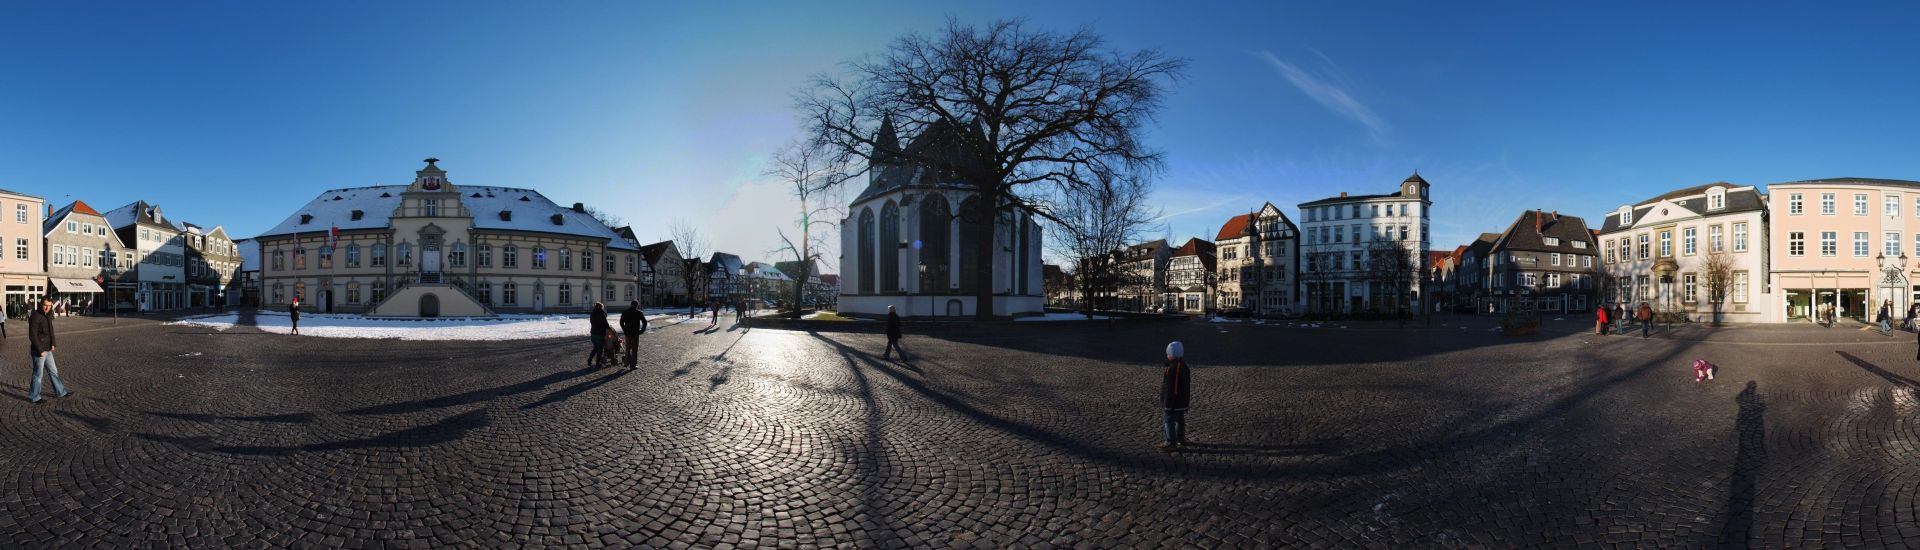 Panorama Rathausplatz in Lippstadt